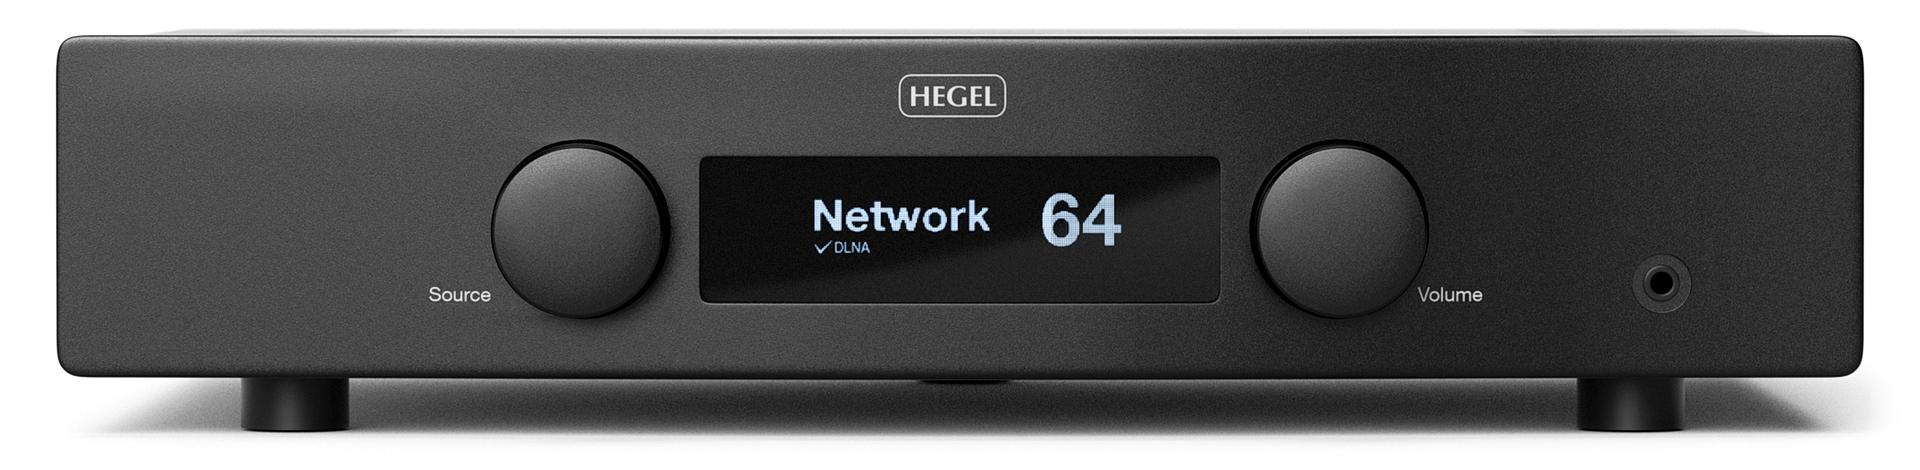 Hegel H95 Integrated Amplifier